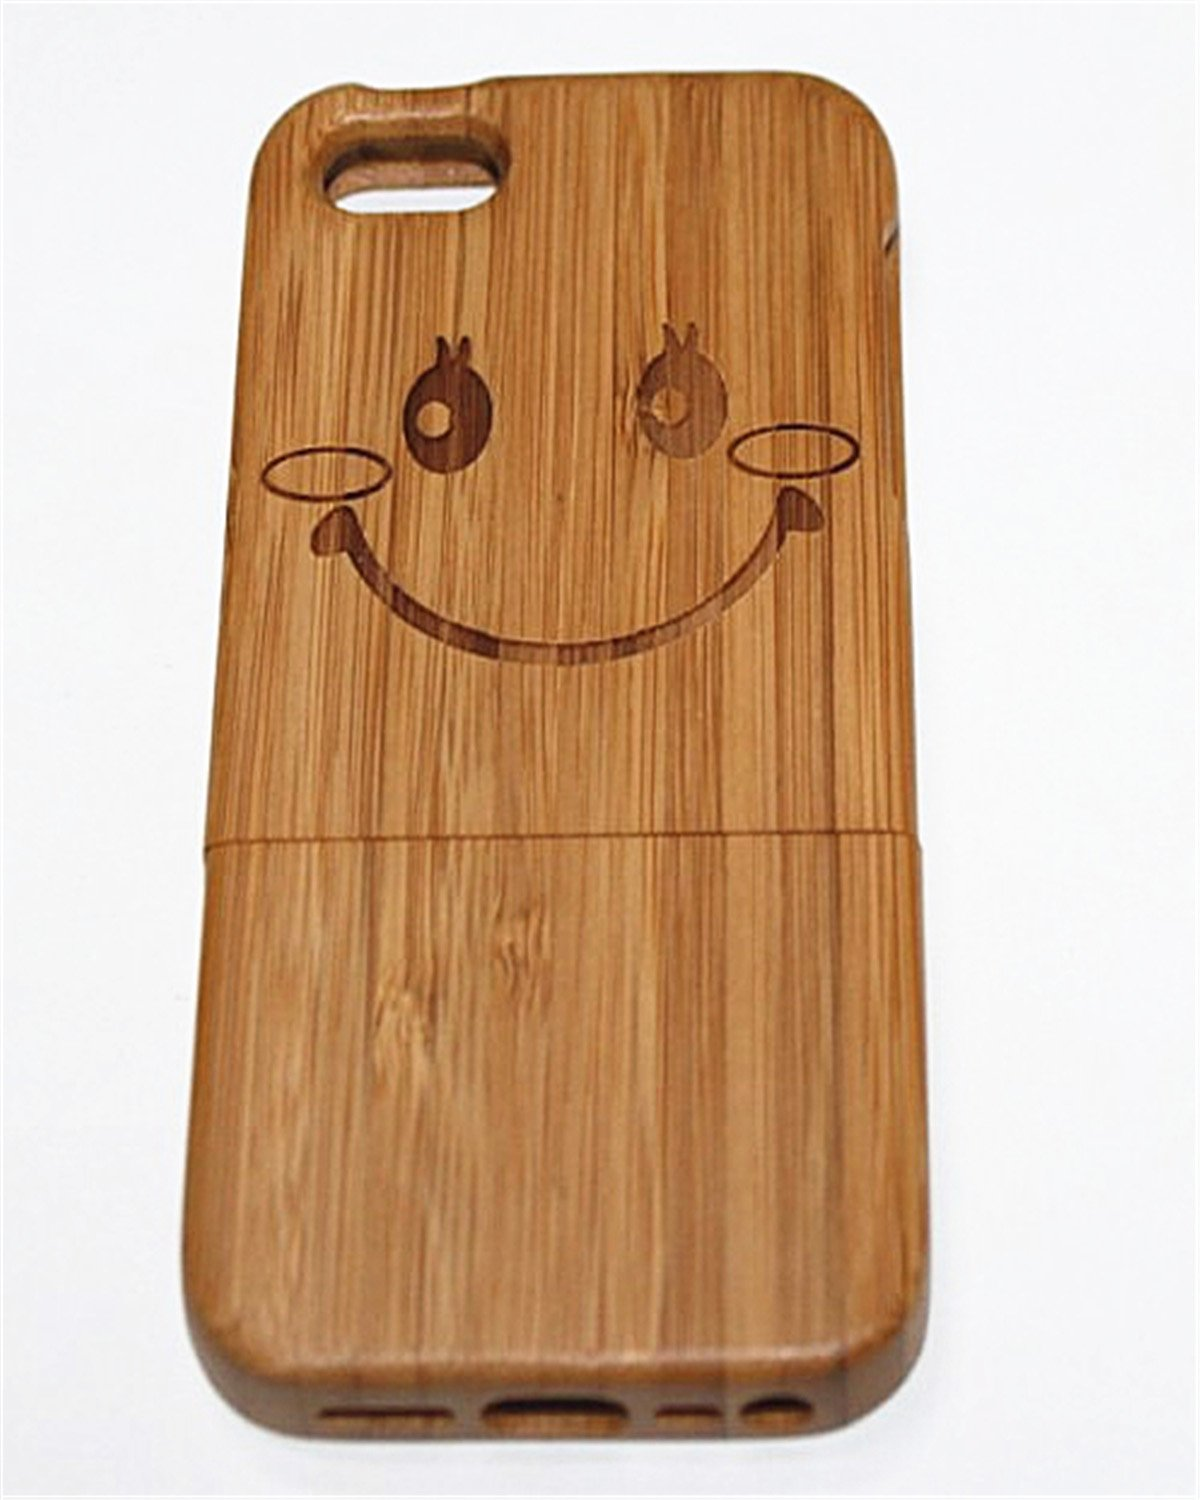 iPhone 5S Case, Firefish Natural Handmade Hard Wood Case Cove With Durable Material Shock Protective Ultra Slim Fit For iPhone 5S ( With A Stylus) -Smiling Face